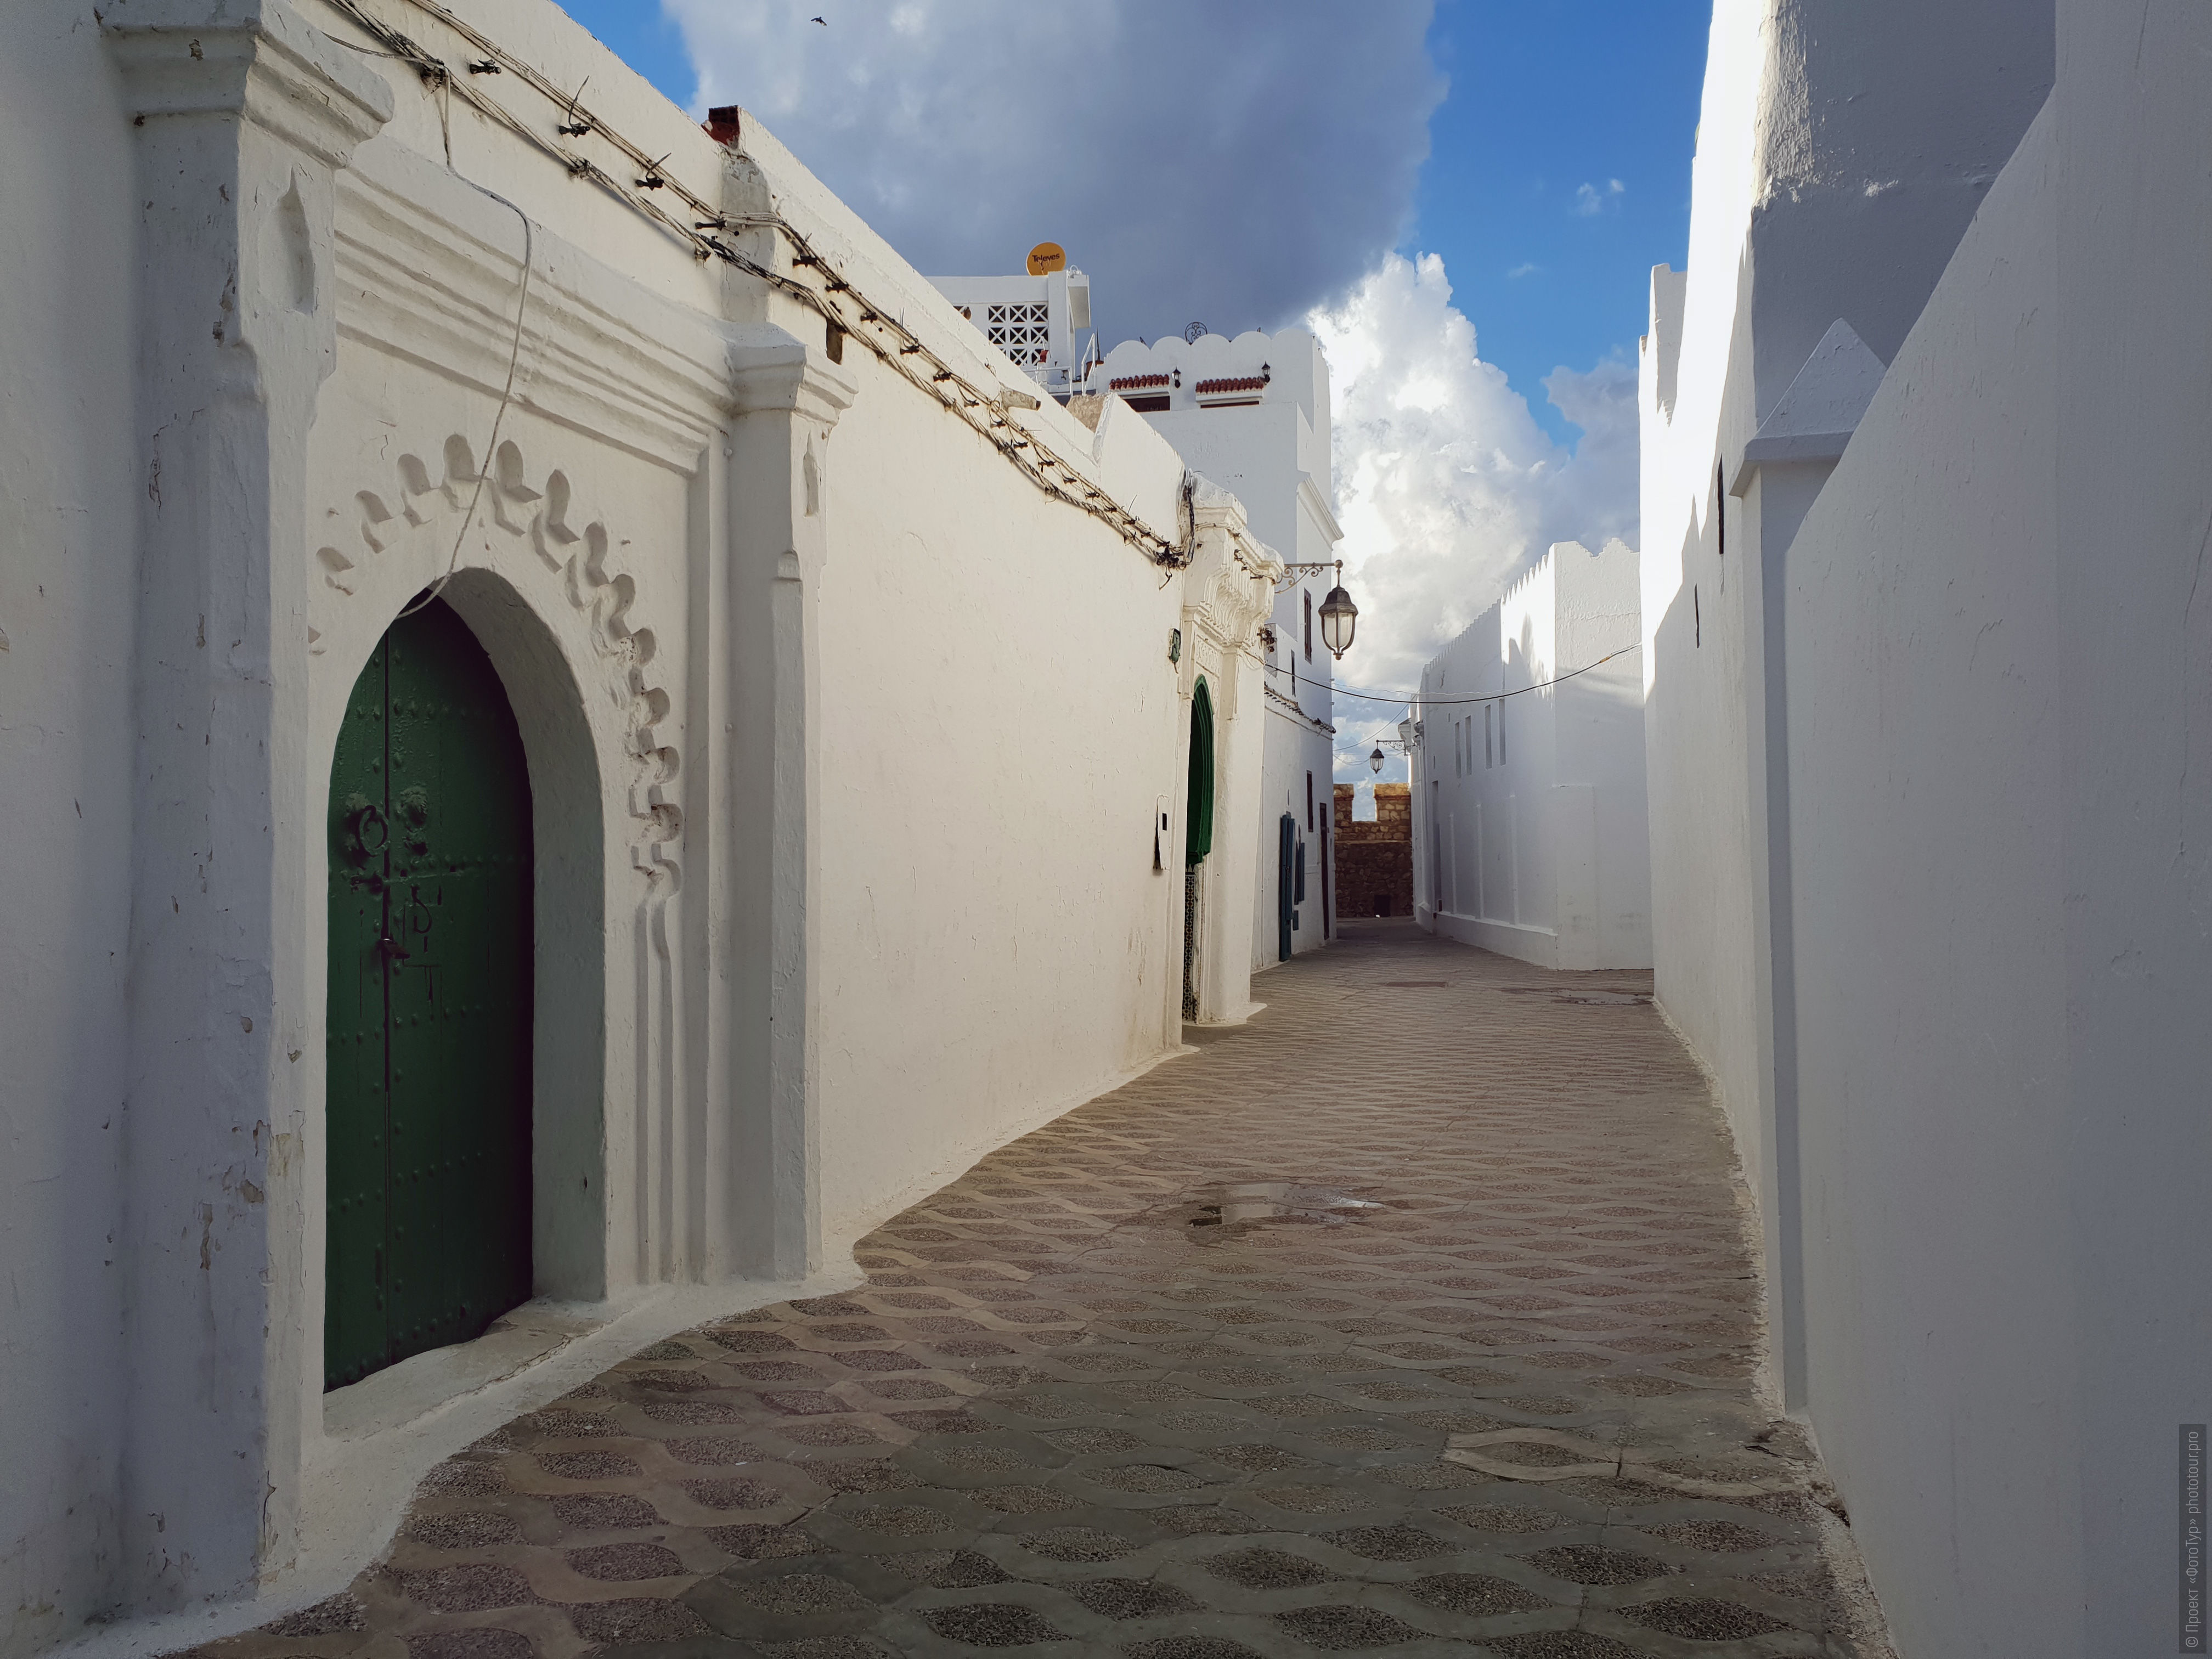 The narrow streets of Asila. Adventure photo tour: medina, cascades, sands and ports of Morocco, April 4 - 17, 2020.